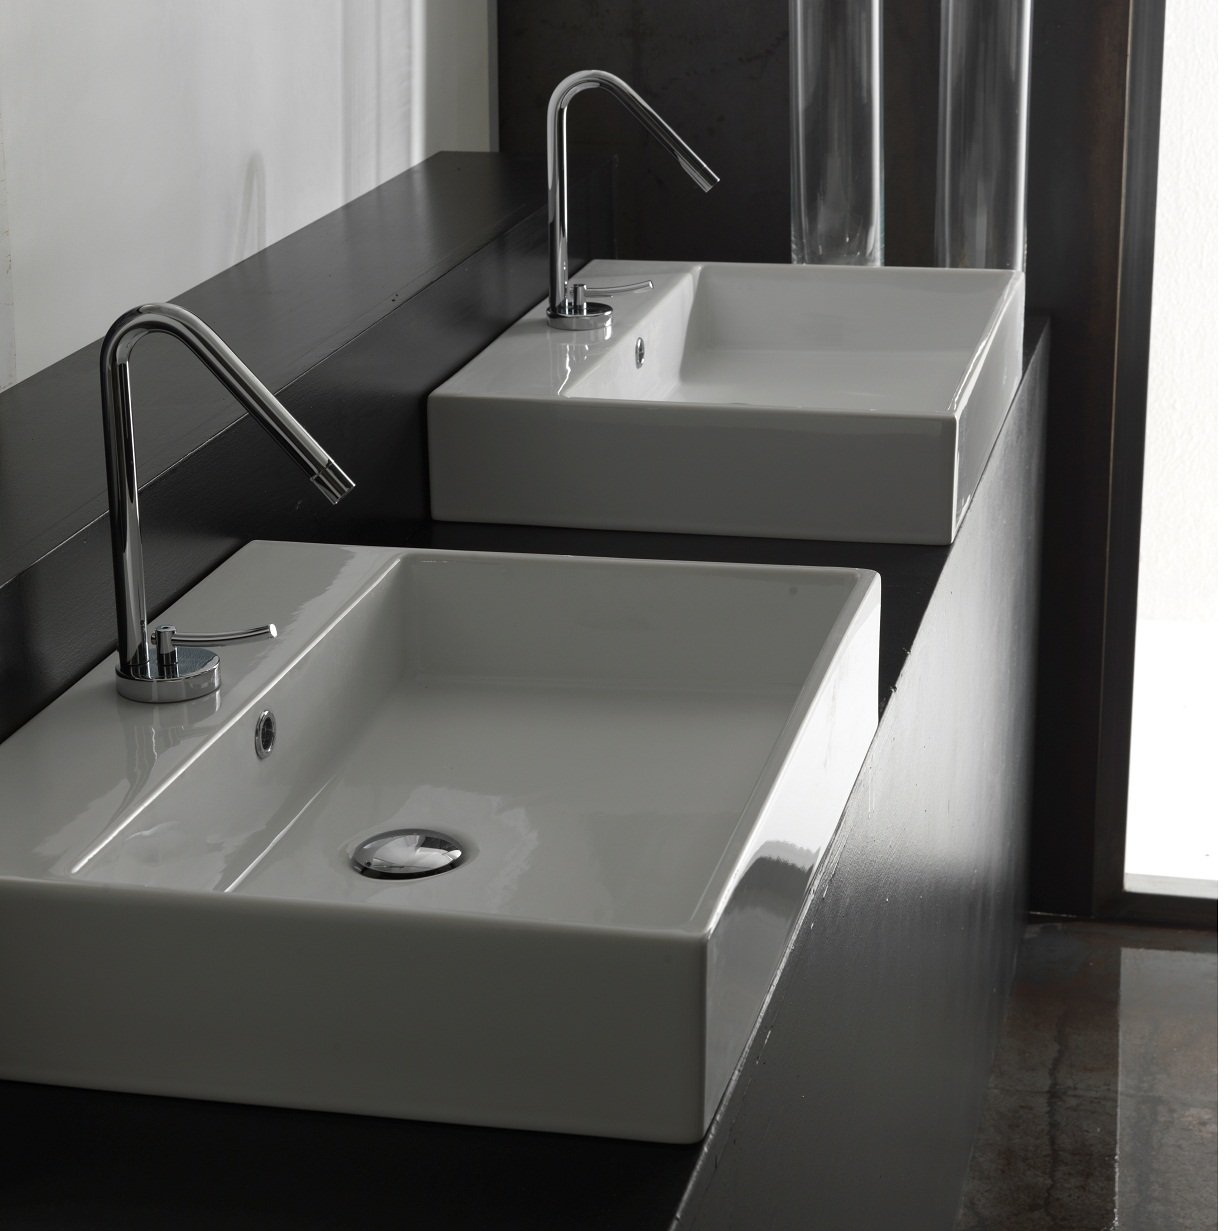 Unlimited 60 Wall-mount or Countertop Bathroom Sink (With Faucet Hole)